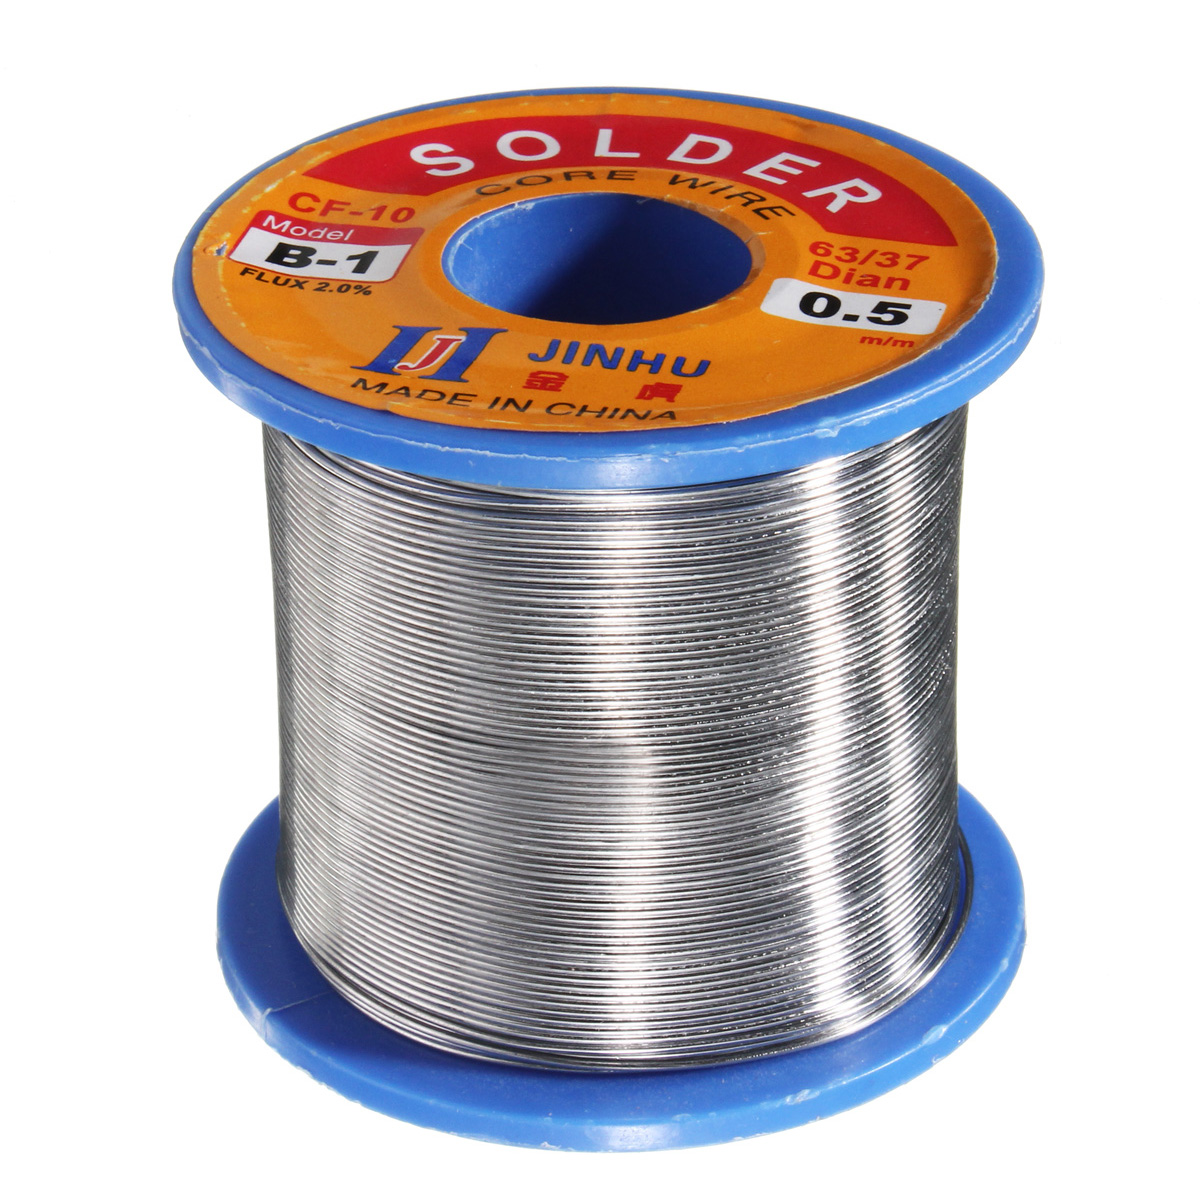 300g 0.5mm Soldeing Wire Welding Wire 63/37 Tin Lead 2.0% Flux Roll Reel Solder Tools